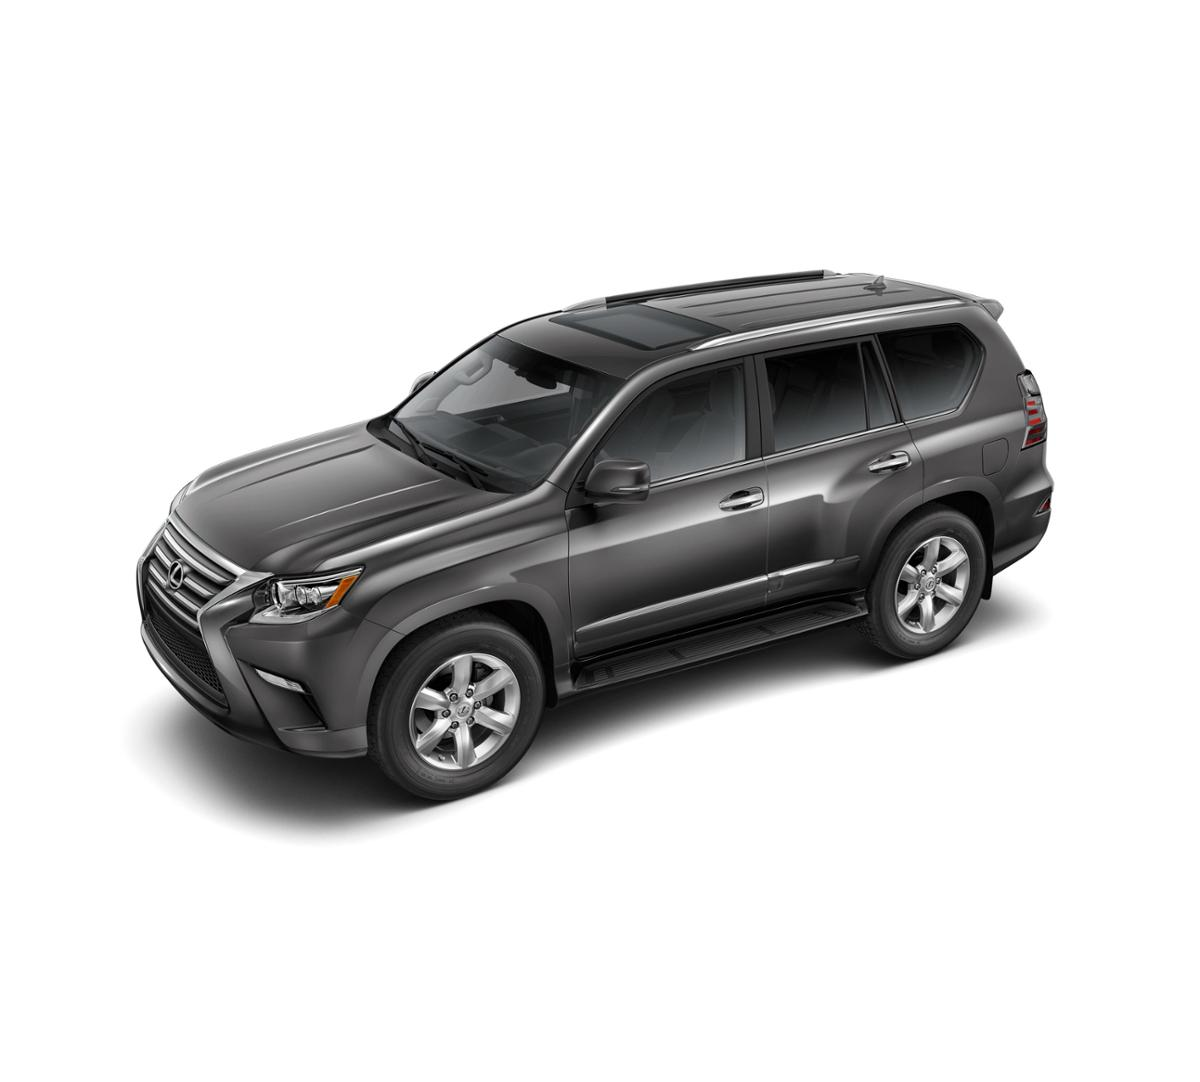 new 2019 nebula gray pearl lexus gx 460 for sale in white plains ny w1974. Black Bedroom Furniture Sets. Home Design Ideas